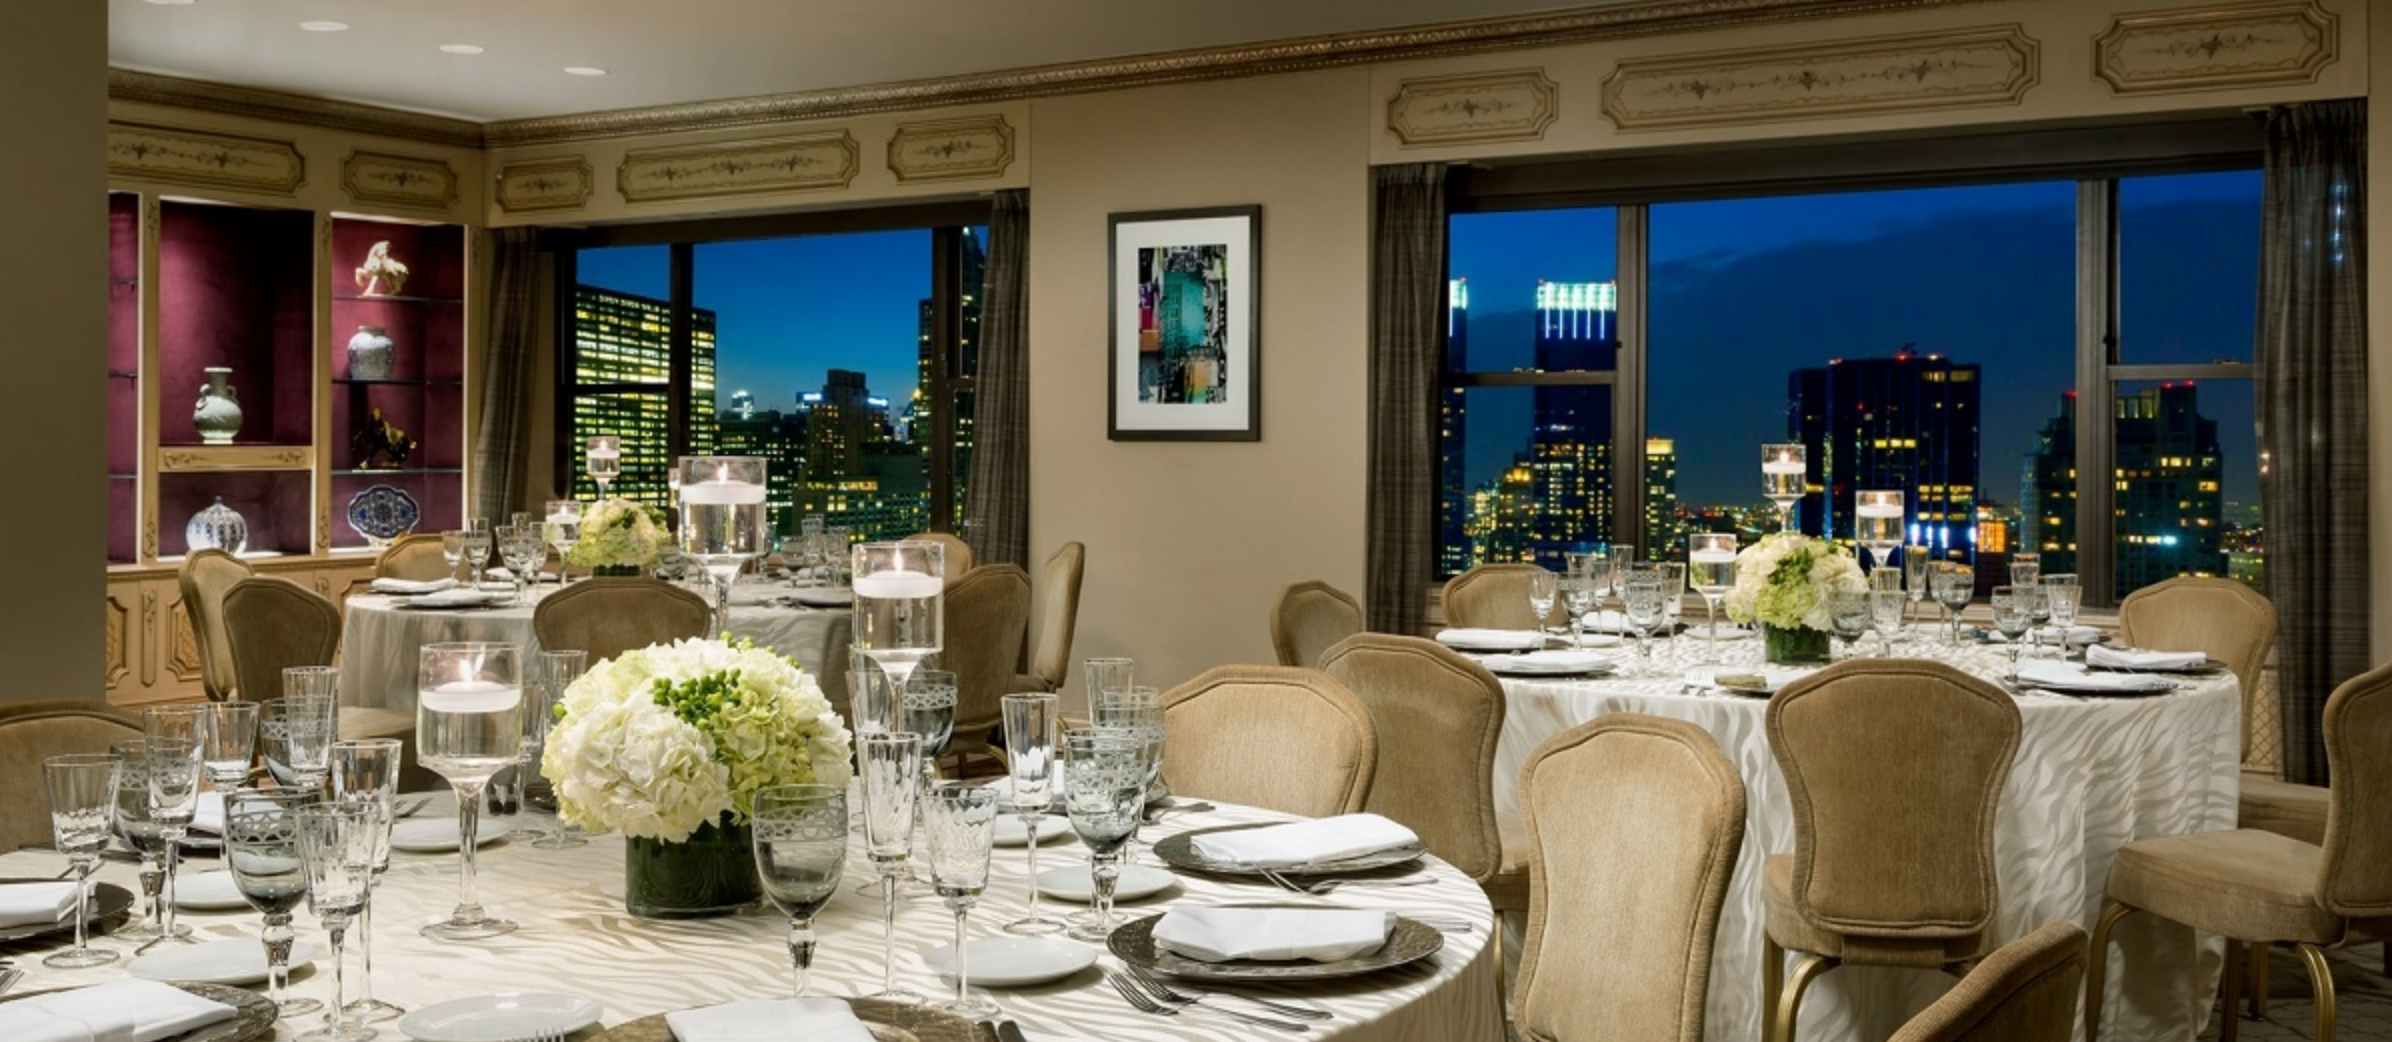 Photo #2 Park Lane Suite at Park Lane Hotel New York